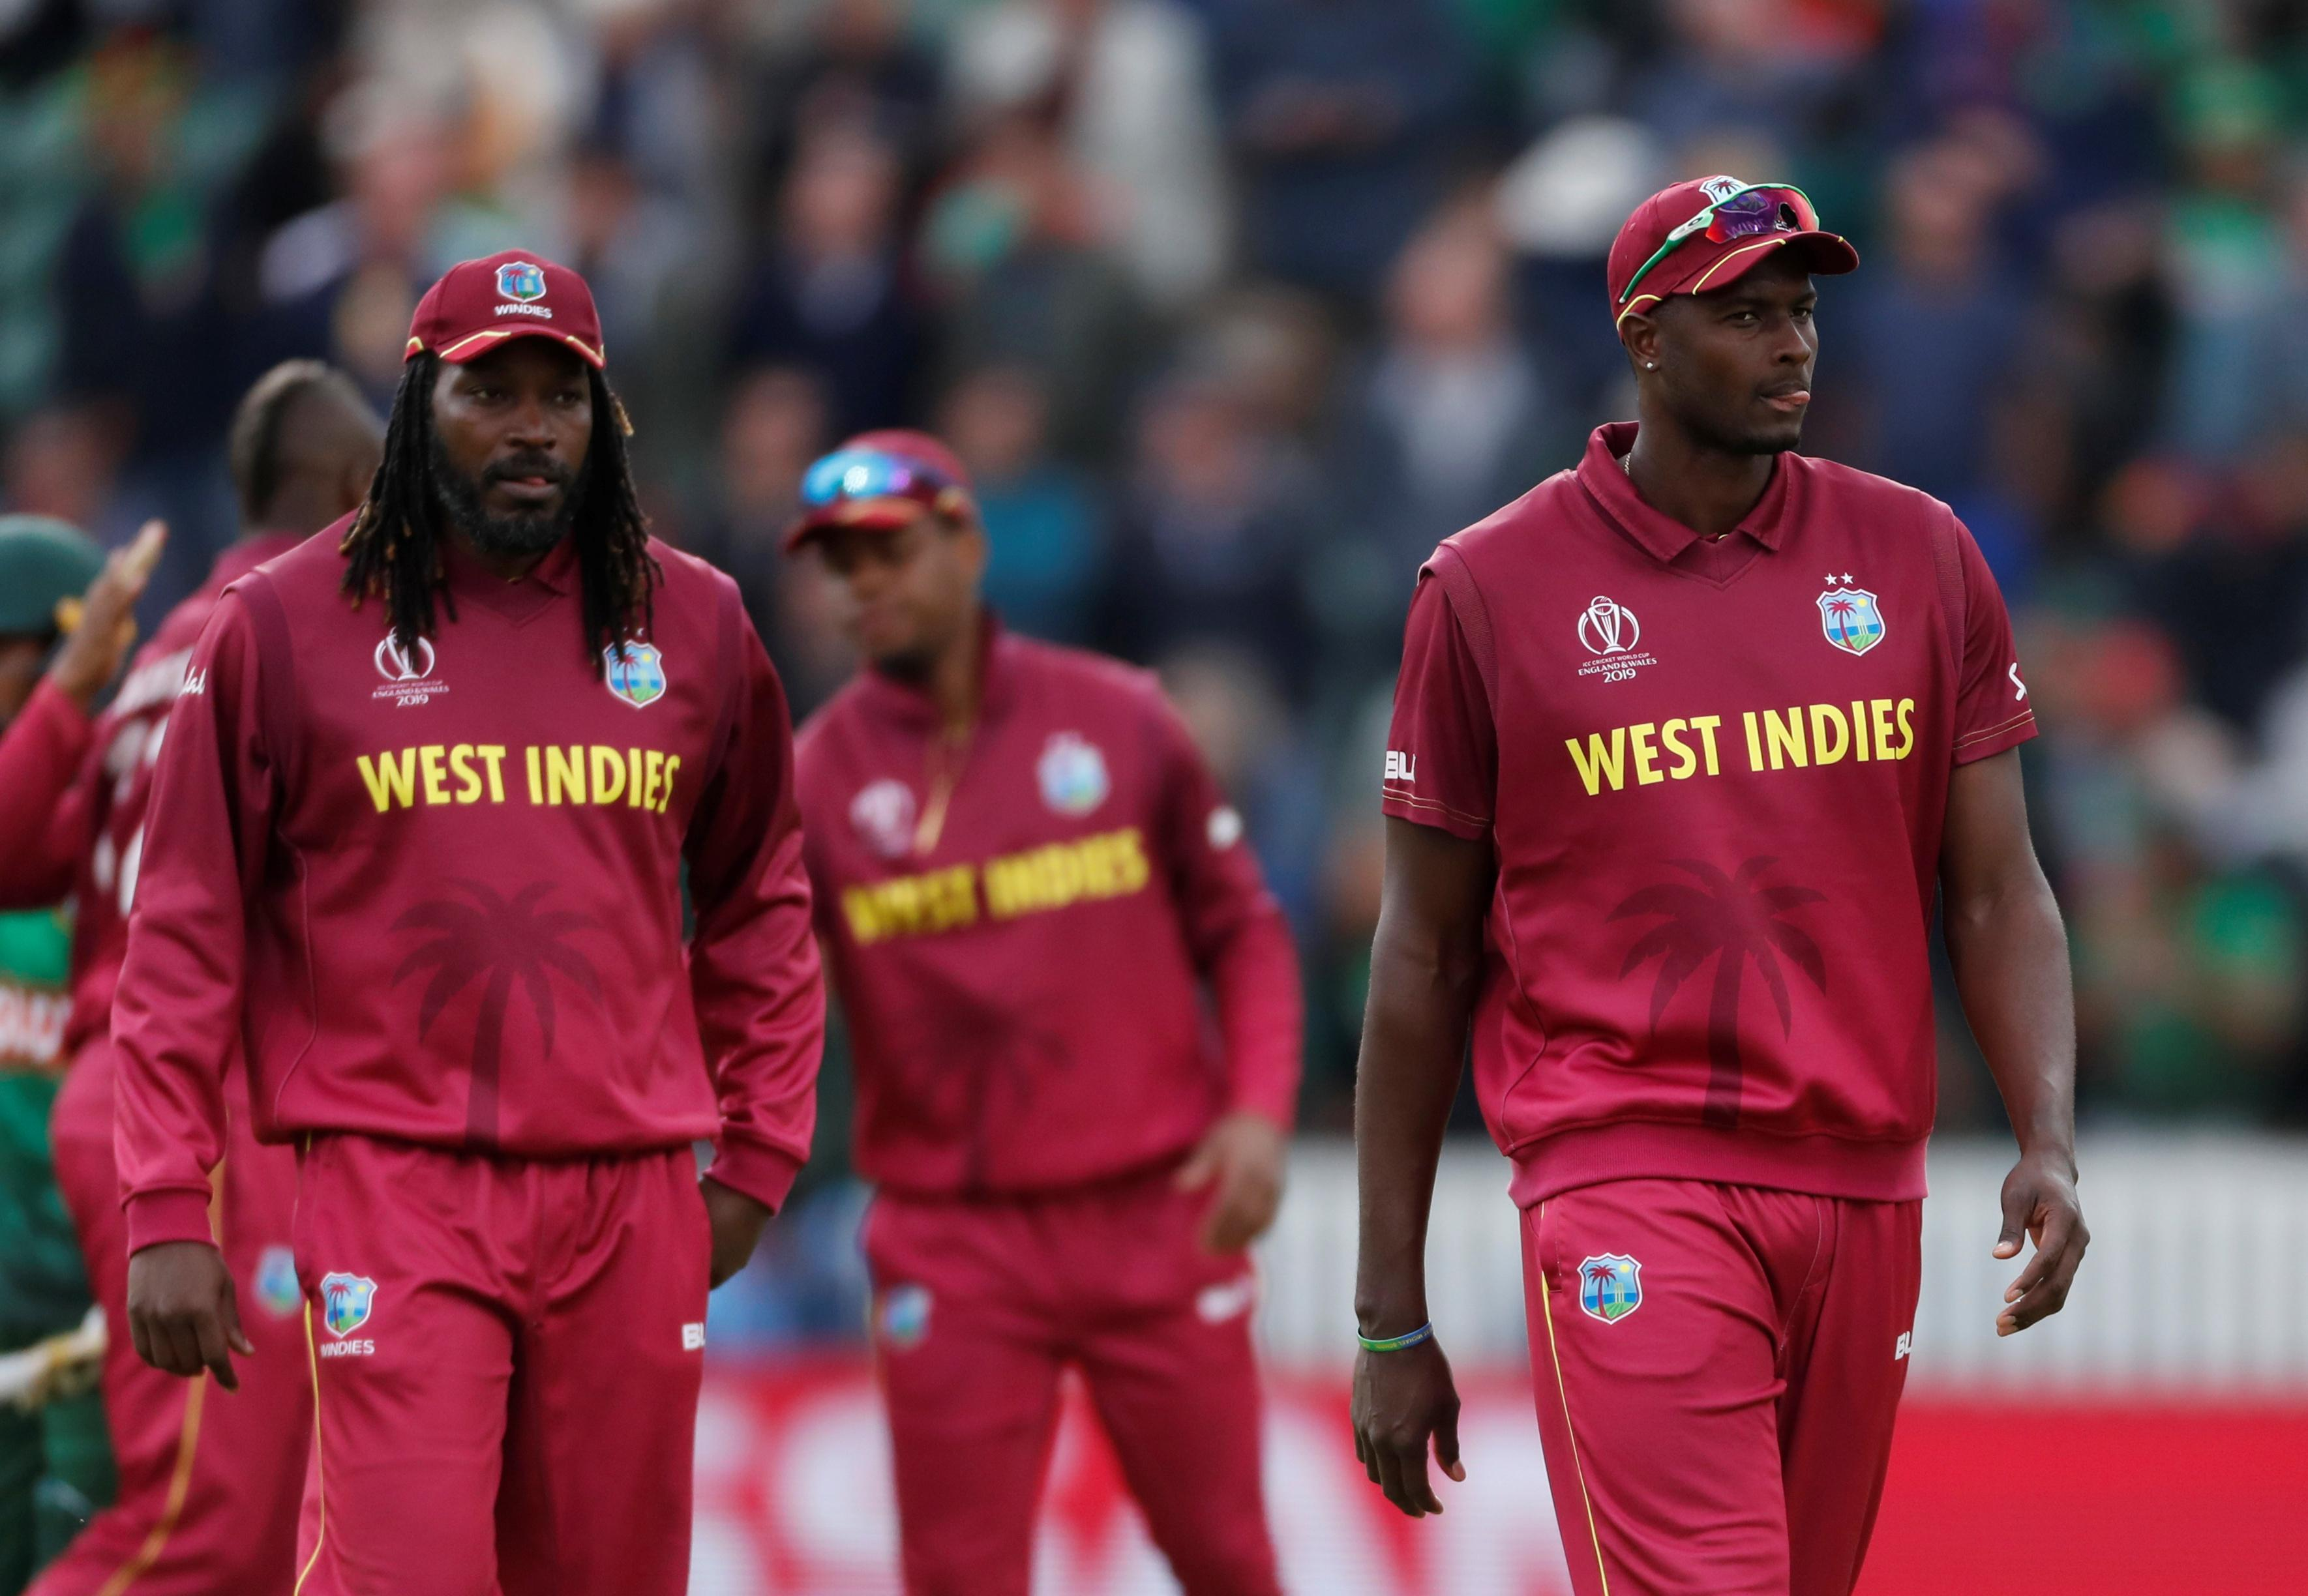 Holder says frank discussions can fire West Indies against New Zealand